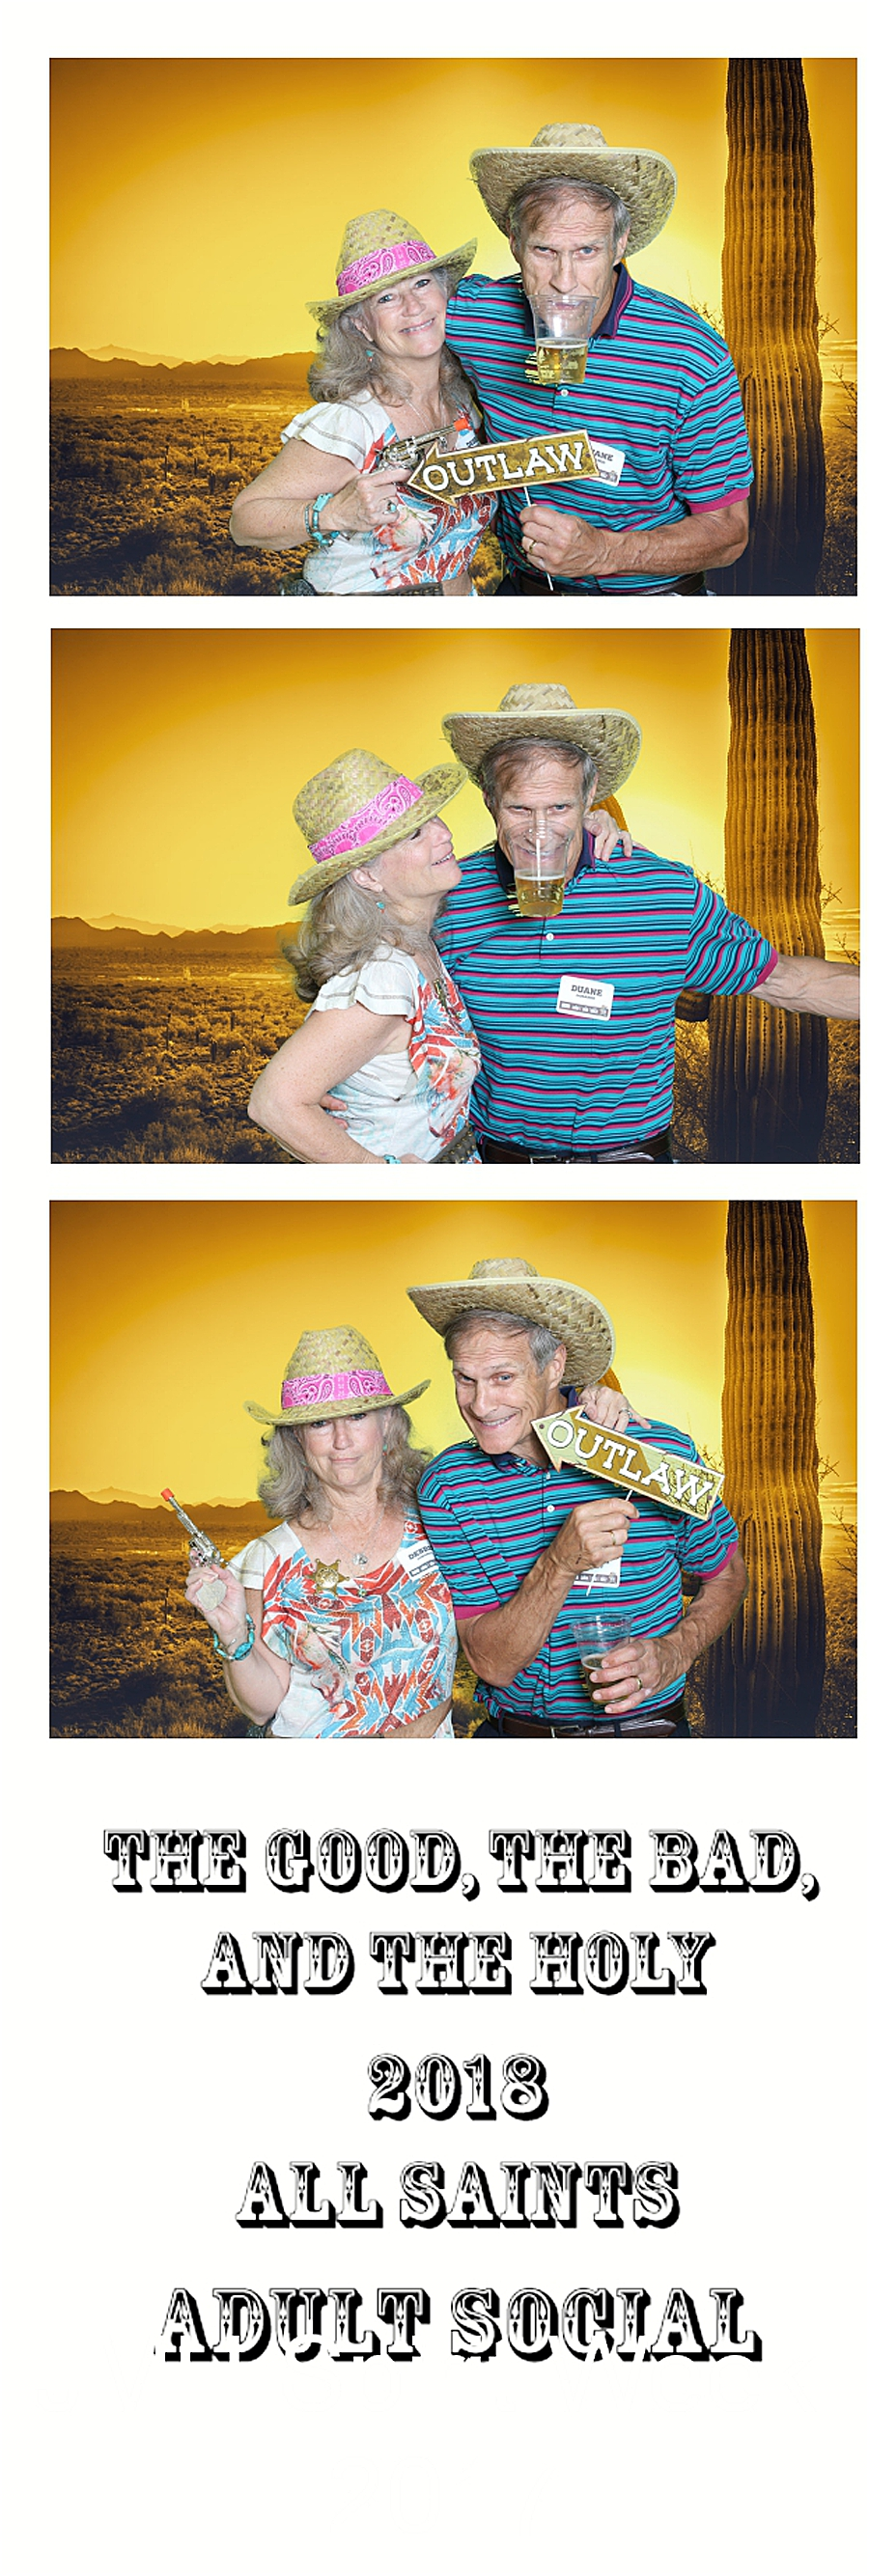 Knoxville Photo Booth_1338.jpg